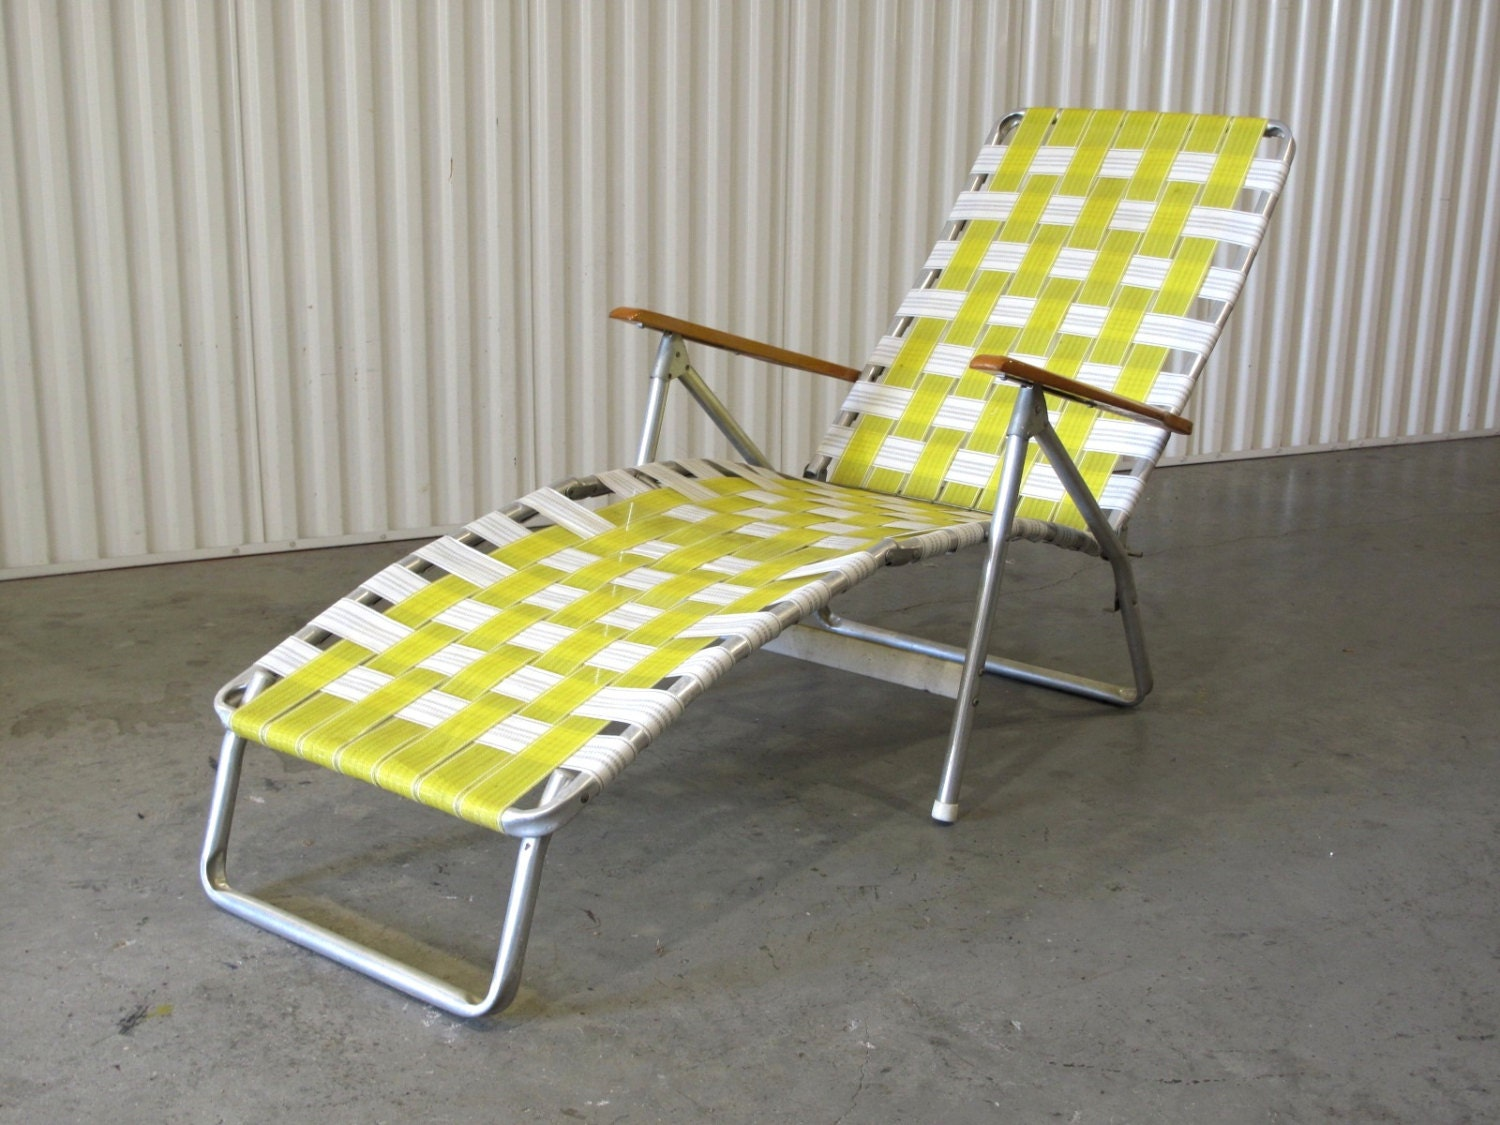 1960 s Webbed Lawn Chair Folding Beach Chair Lounge